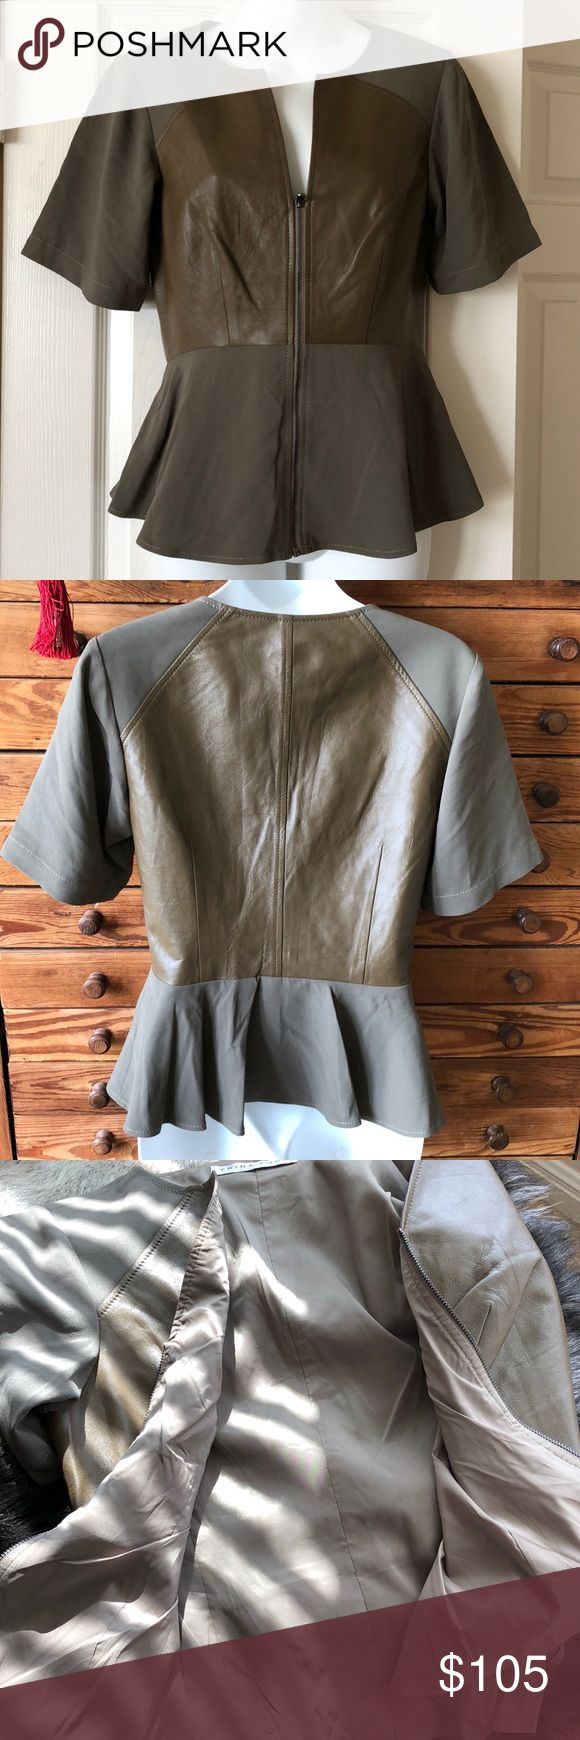 NWOT Trina Turk Leather Peplum Top - Sz Sm NWOT Trina Turk Leather Peplum Top - Sz Sm. Beautiful fully lined  leather and chiffon top! Trina Turk Tops Blouses